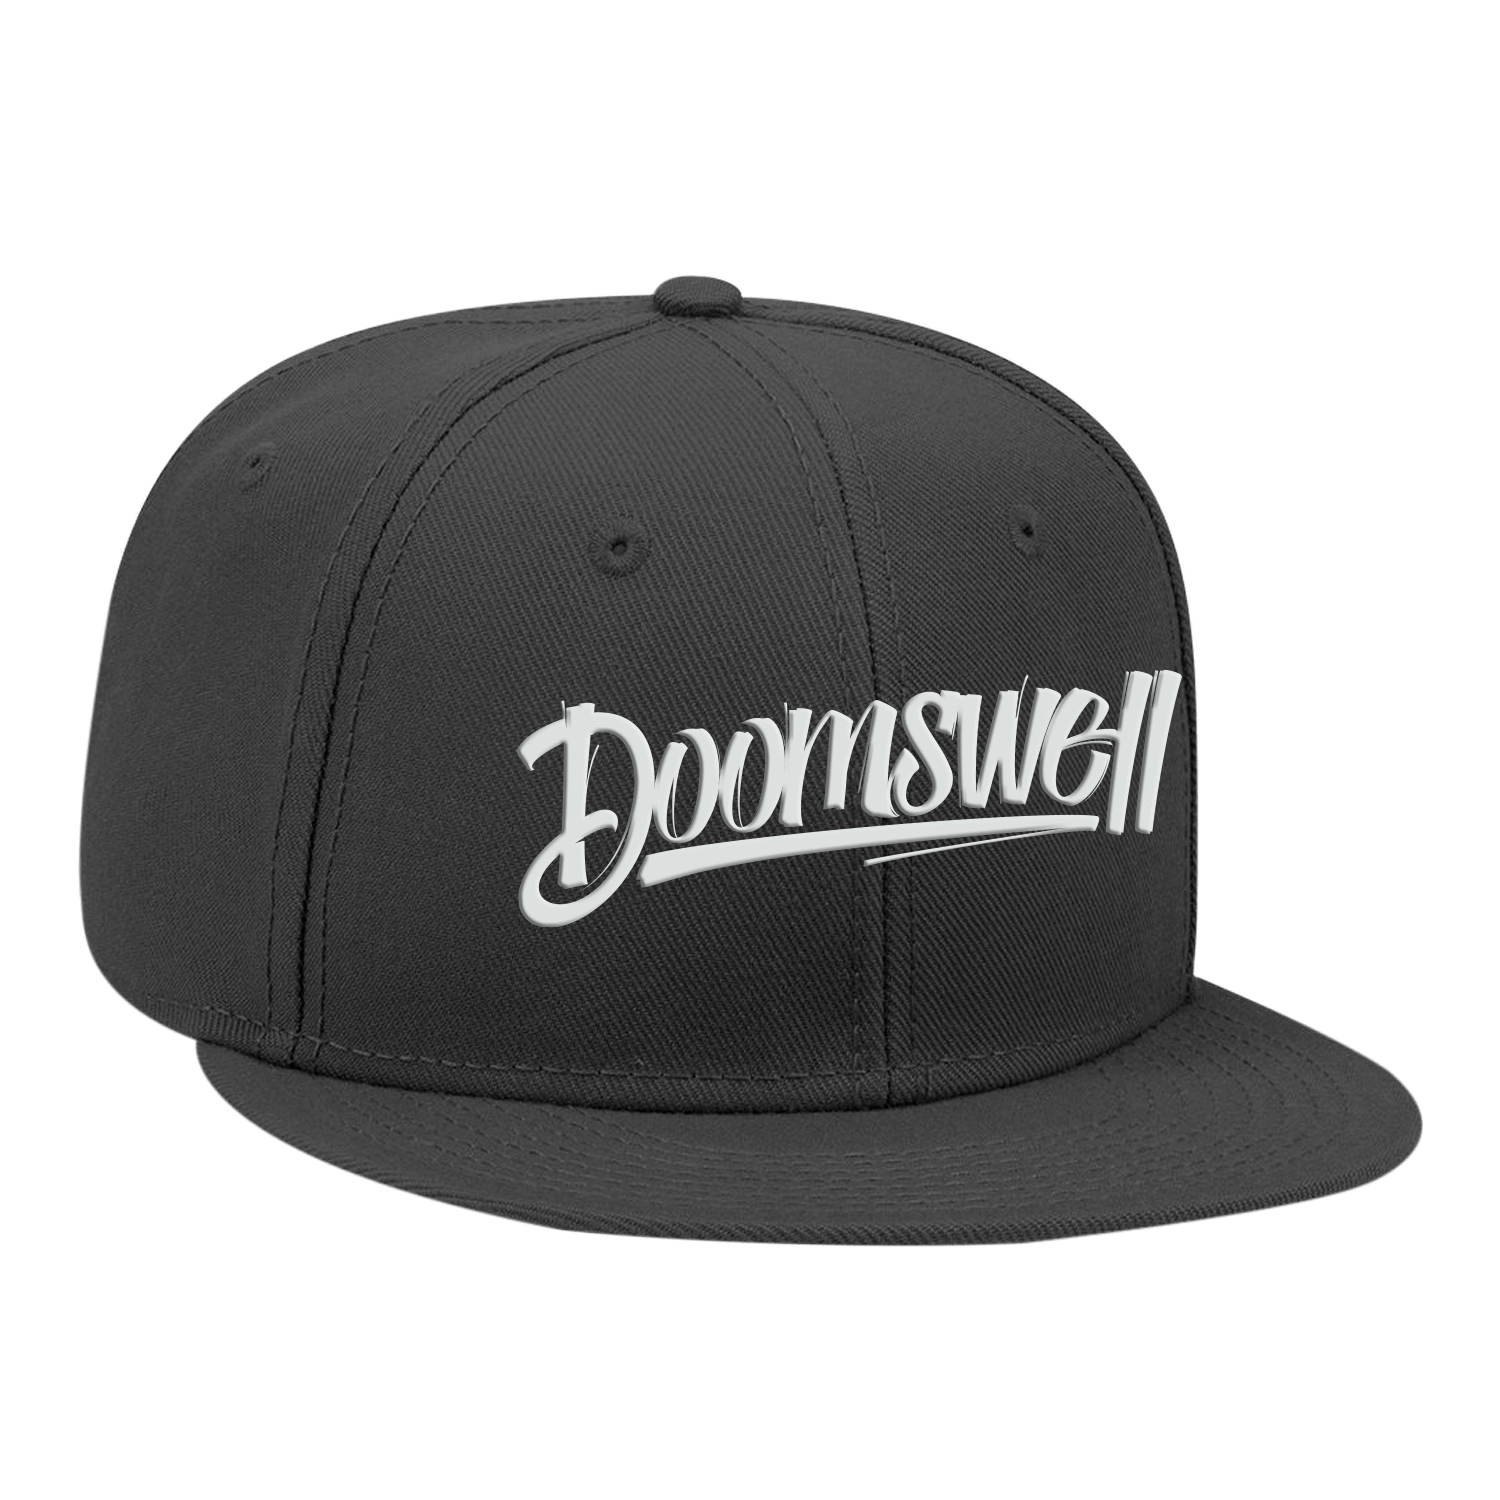 Doomswell Boarding Co. Hats Black Script Hat-Black